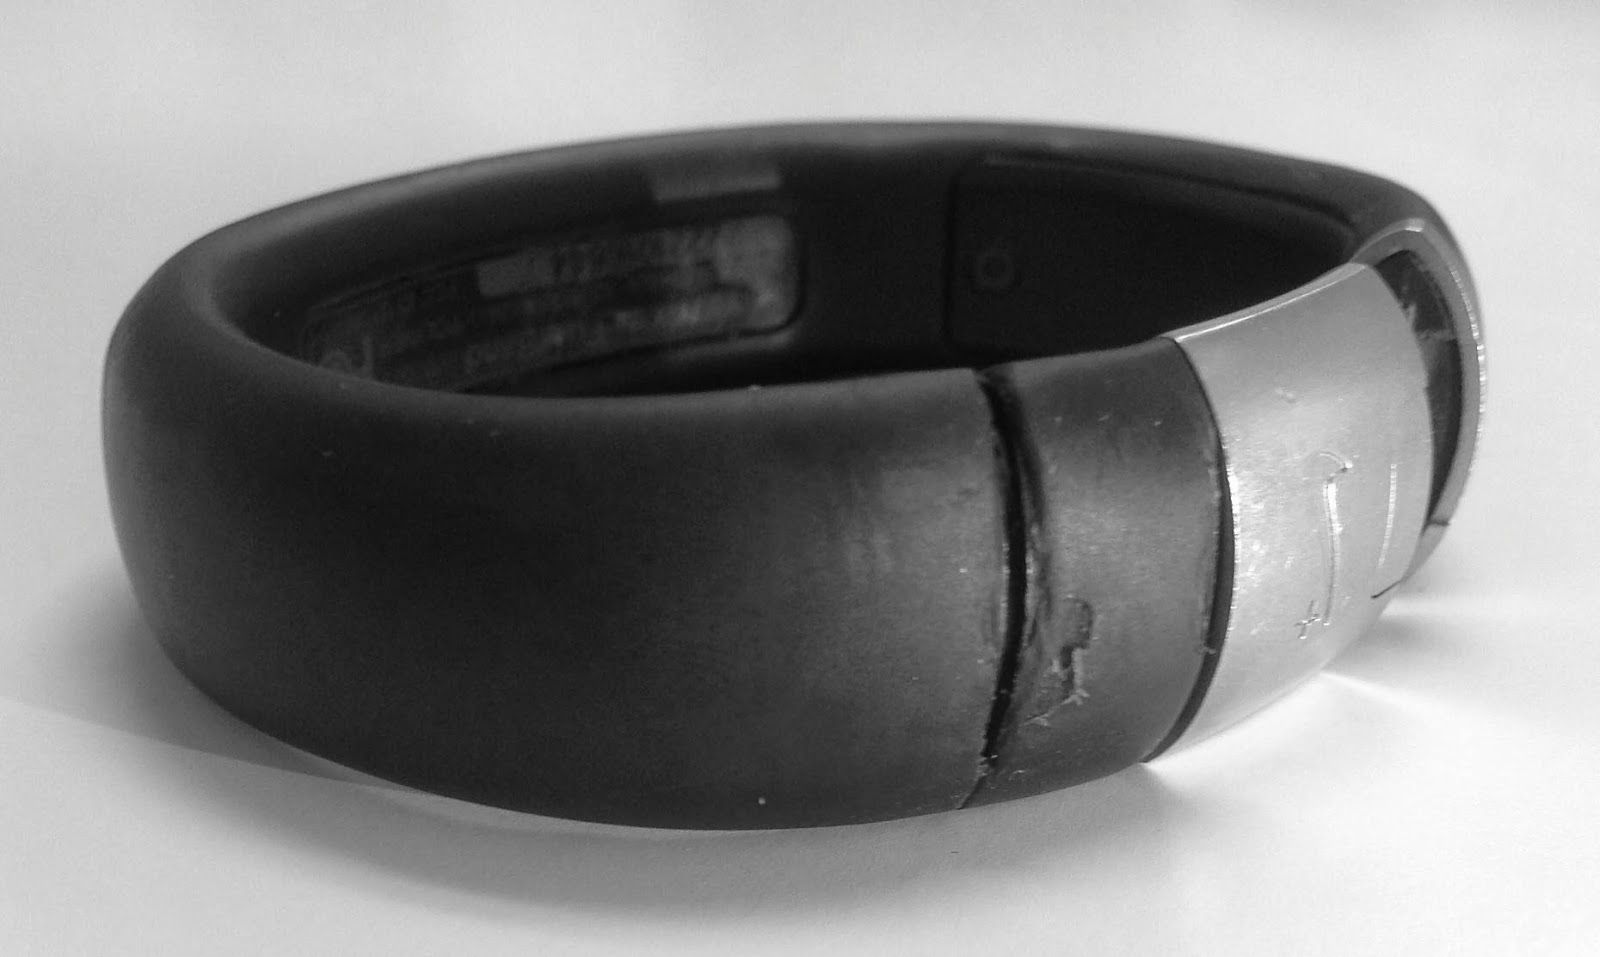 How To Nike: My Tattered Fuelband